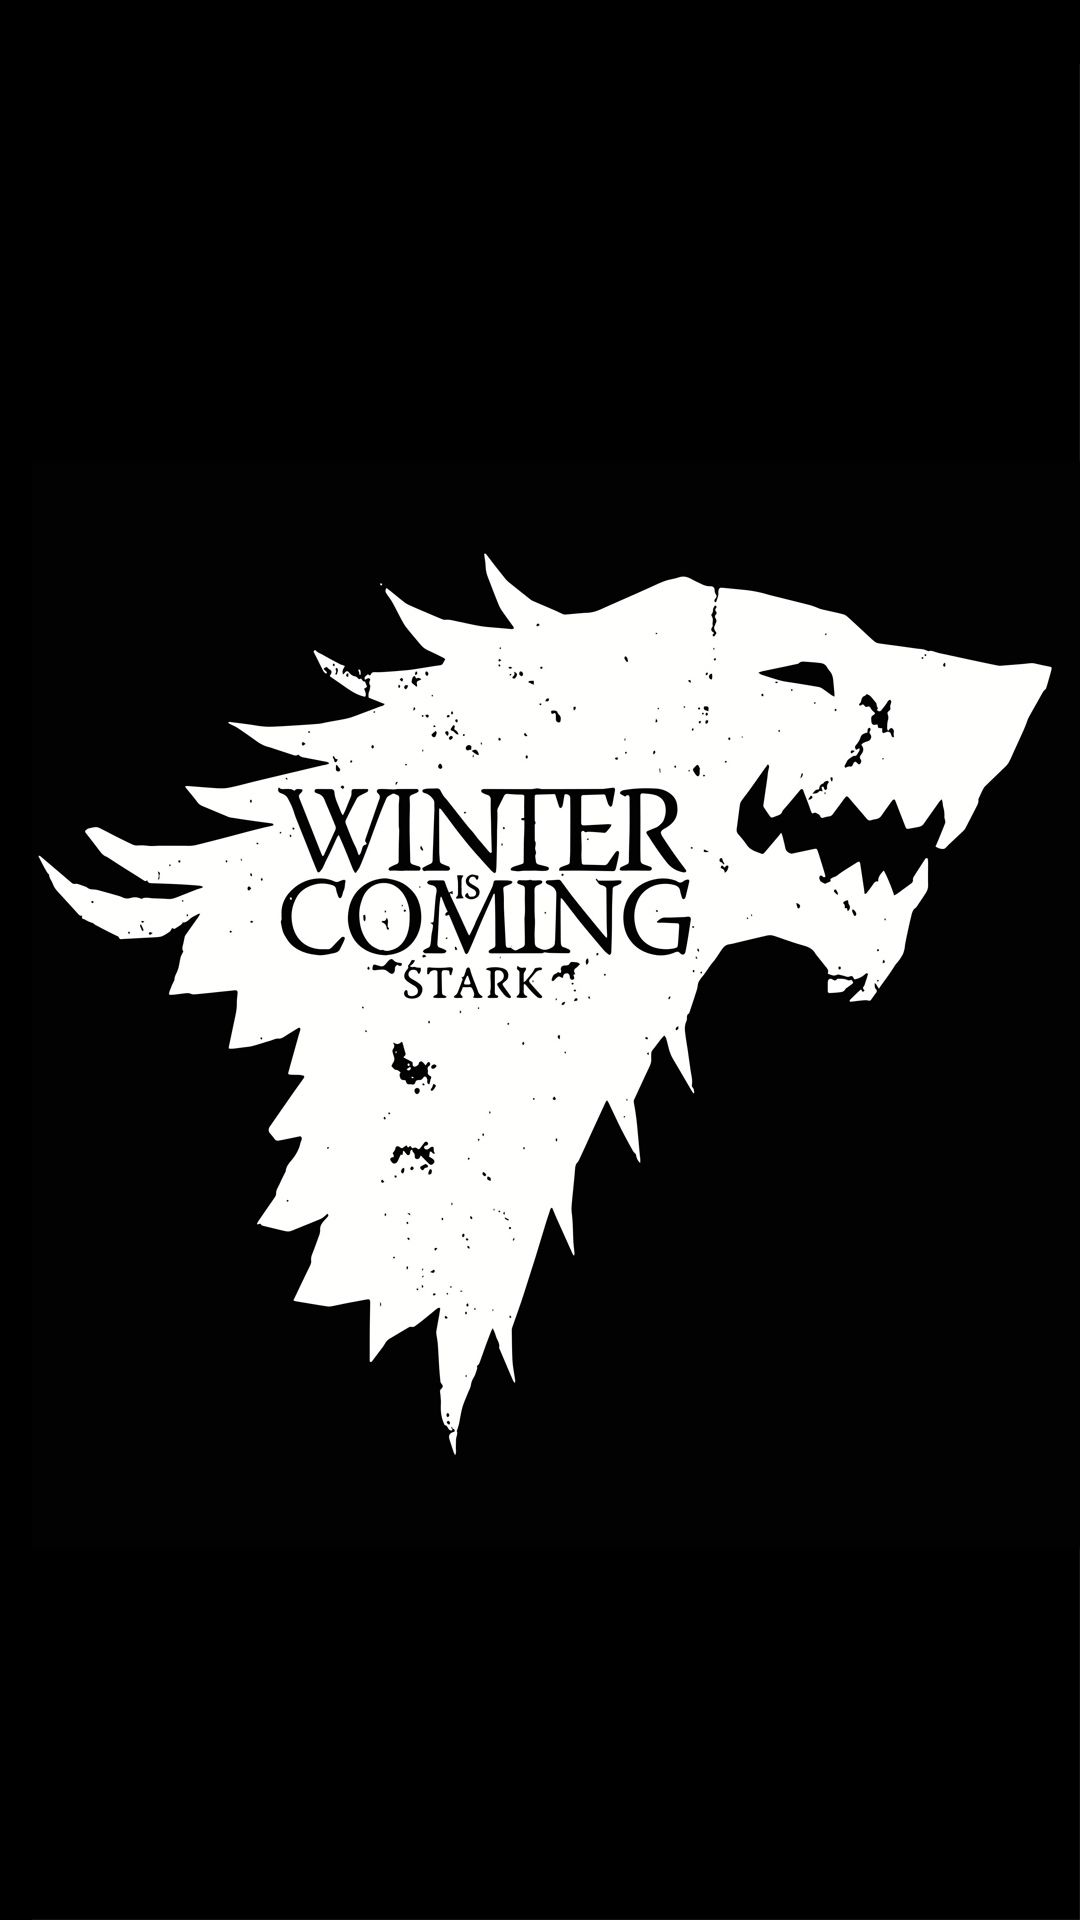 Pin By Tim Russ On Game Of Thrones Game Of Thrones Winter Winter Is Coming Wallpaper Winter Is Coming